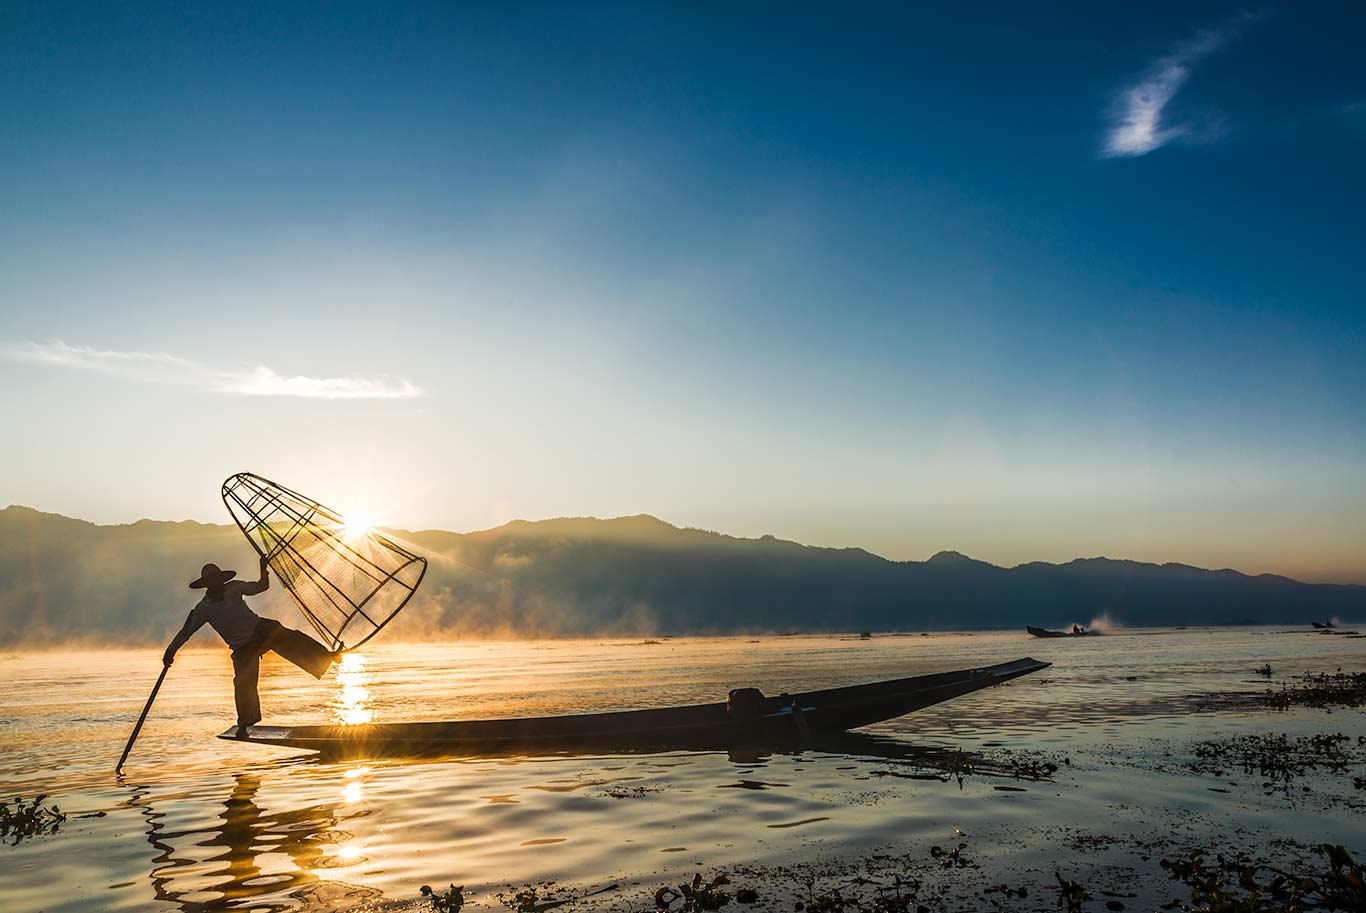 Myanmar, Inle Lake, Fishing at Sunrise